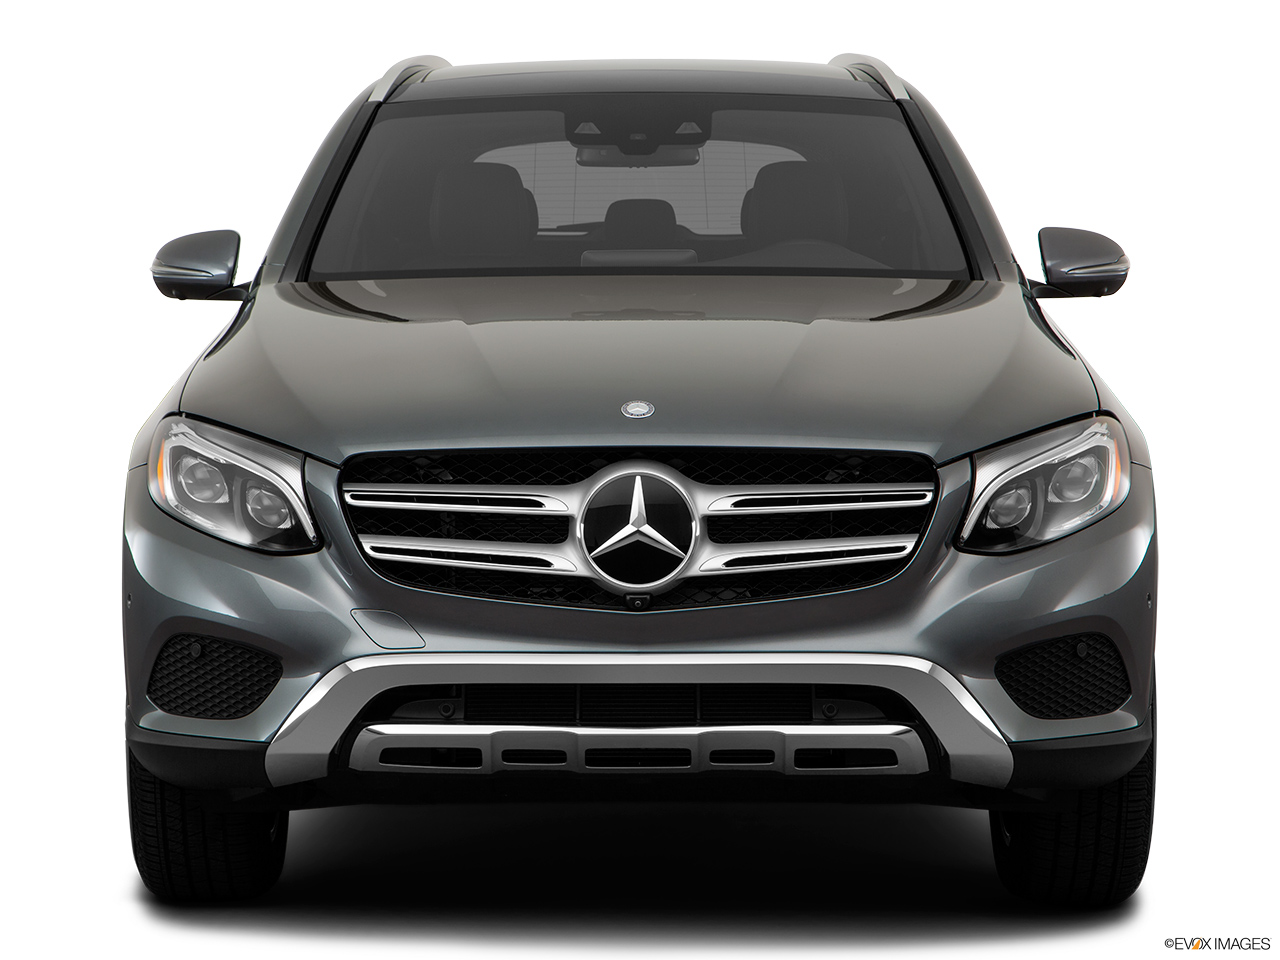 Mercedes benz glc class 2017 glc 300 4matic in bahrain for 2017 mercedes benz glc class dimensions